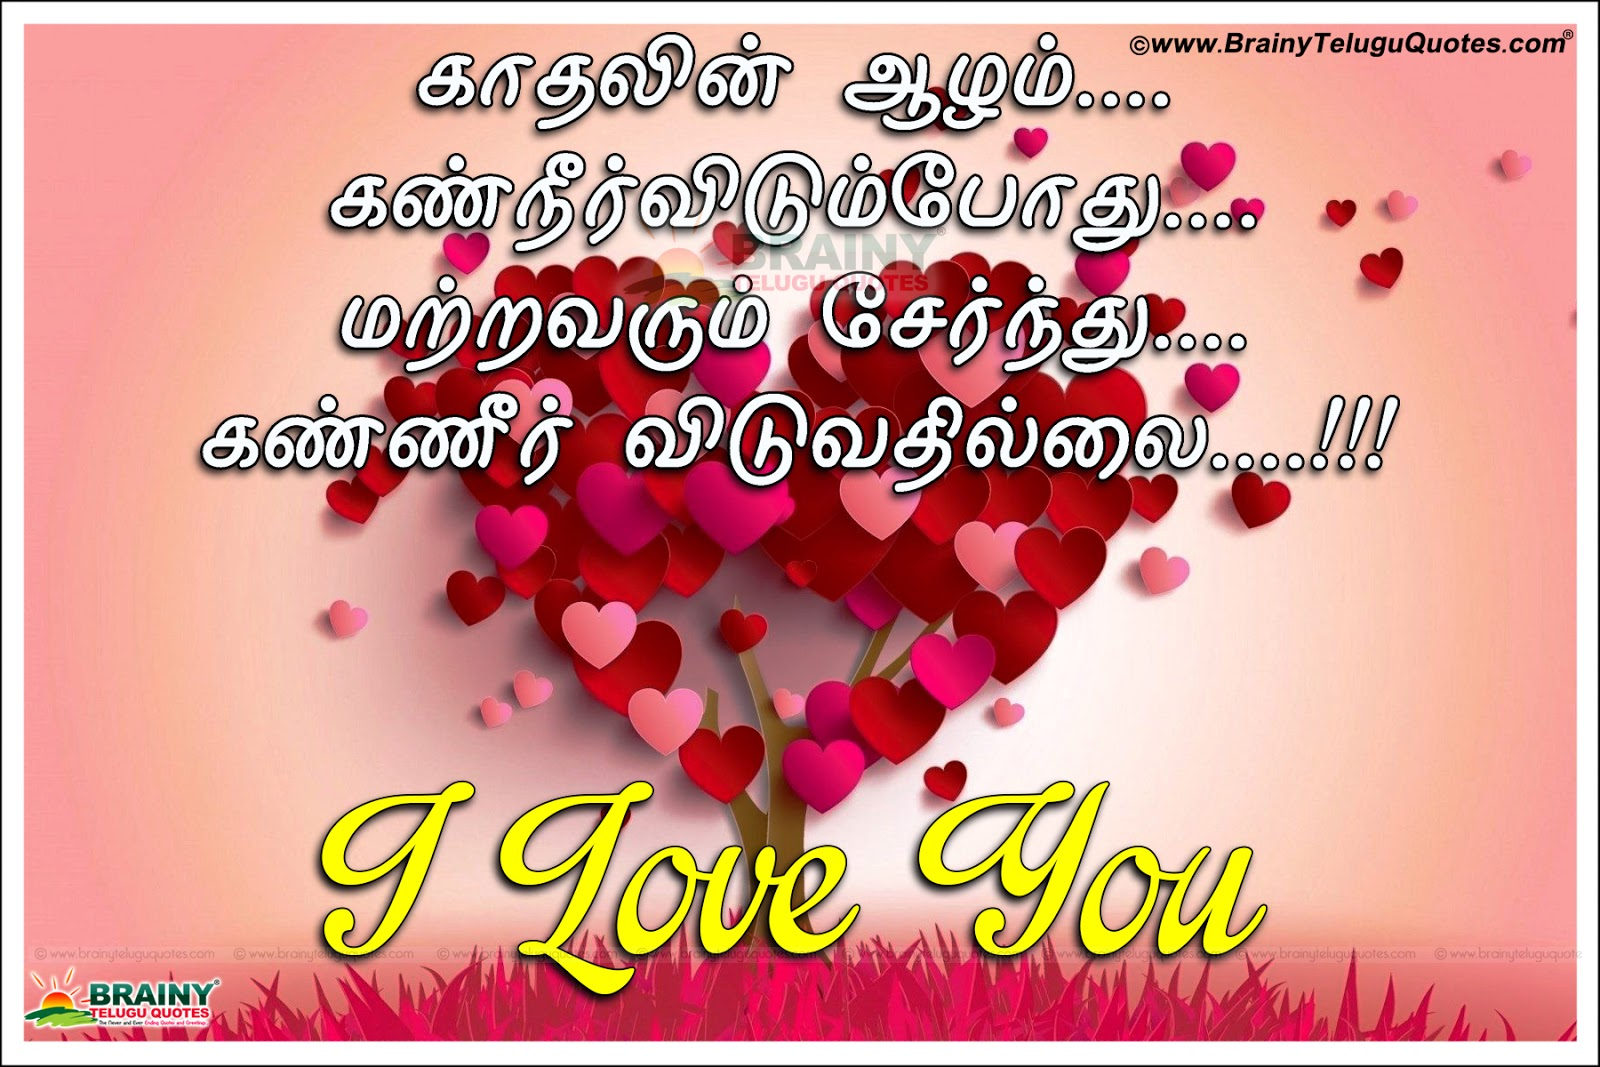 Tamil Kadhal Kavidhai Tamil Sad Quotes Tamil Love Quotes T